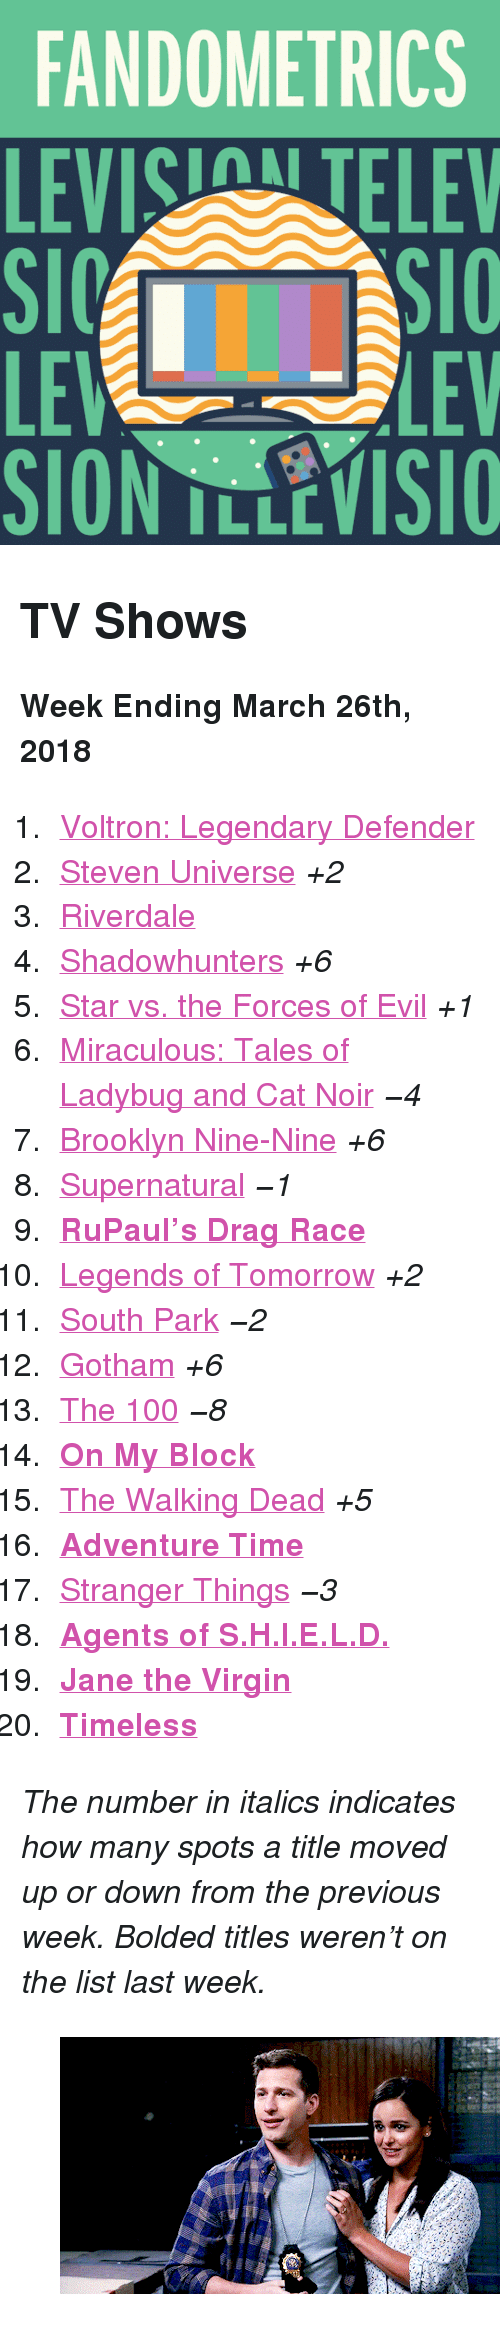 """Adventure Time: FANDOMETRICS  LEVIS TELEV  LE  LEV <h2>TV Shows</h2><p><b>Week Ending March 26th, 2018</b></p><ol><li><a href=""""http://www.tumblr.com/search/voltron"""">Voltron: Legendary Defender</a></li>  <li><a href=""""http://www.tumblr.com/search/steven%20universe"""">Steven Universe</a><i>+2</i></li>  <li><a href=""""http://www.tumblr.com/search/riverdale"""">Riverdale</a></li>  <li><a href=""""http://www.tumblr.com/search/shadowhunters"""">Shadowhunters</a><i>+6</i></li>  <li><a href=""""http://www.tumblr.com/search/star%20vs%20the%20forces%20of%20evil"""">Star vs. the Forces of Evil</a><i>+1</i></li>  <li><a href=""""http://www.tumblr.com/search/miraculous%20ladybug"""">Miraculous: Tales of Ladybug and Cat Noir</a><i><i>−4</i></i></li>  <li><a href=""""http://www.tumblr.com/search/brooklyn%20nine%20nine"""">Brooklyn Nine-Nine</a><i>+6</i></li>  <li><a href=""""http://www.tumblr.com/search/supernatural"""">Supernatural</a><i><i>−1</i></i></li>  <li><a href=""""http://www.tumblr.com/search/rupaul's%20drag%20race""""><b>RuPaul&rsquo;s Drag Race</b></a></li>  <li><a href=""""http://www.tumblr.com/search/legends%20of%20tomorrow"""">Legends of Tomorrow</a><i>+2</i></li>  <li><a href=""""http://www.tumblr.com/search/south%20park"""">South Park</a><i><i>−2</i></i></li>  <li><a href=""""http://www.tumblr.com/search/gotham"""">Gotham</a><i>+6</i></li>  <li><a href=""""http://www.tumblr.com/search/the%20100"""">The 100</a><i><i>−8</i></i></li>  <li><a href=""""http://www.tumblr.com/search/on%20my%20block""""><b>On My Block</b></a></li>  <li><a href=""""http://www.tumblr.com/search/the%20walking%20dead"""">The Walking Dead</a><i>+5</i></li>  <li><a href=""""http://www.tumblr.com/search/adventure%20time""""><b>Adventure Time</b></a></li>  <li><a href=""""http://www.tumblr.com/search/stranger%20things"""">Stranger Things</a><i><i>−3</i></i></li>  <li><a href=""""http://www.tumblr.com/search/agents%20of%20shield""""><b>Agents of S.H.I.E.L.D.</b></a></li>  <li><a href=""""http://www.tumblr.com/search/jane%20the%20virgin""""><b>Jane the Virgin</b></a></li>  <li><a href=""""http://www.tum"""